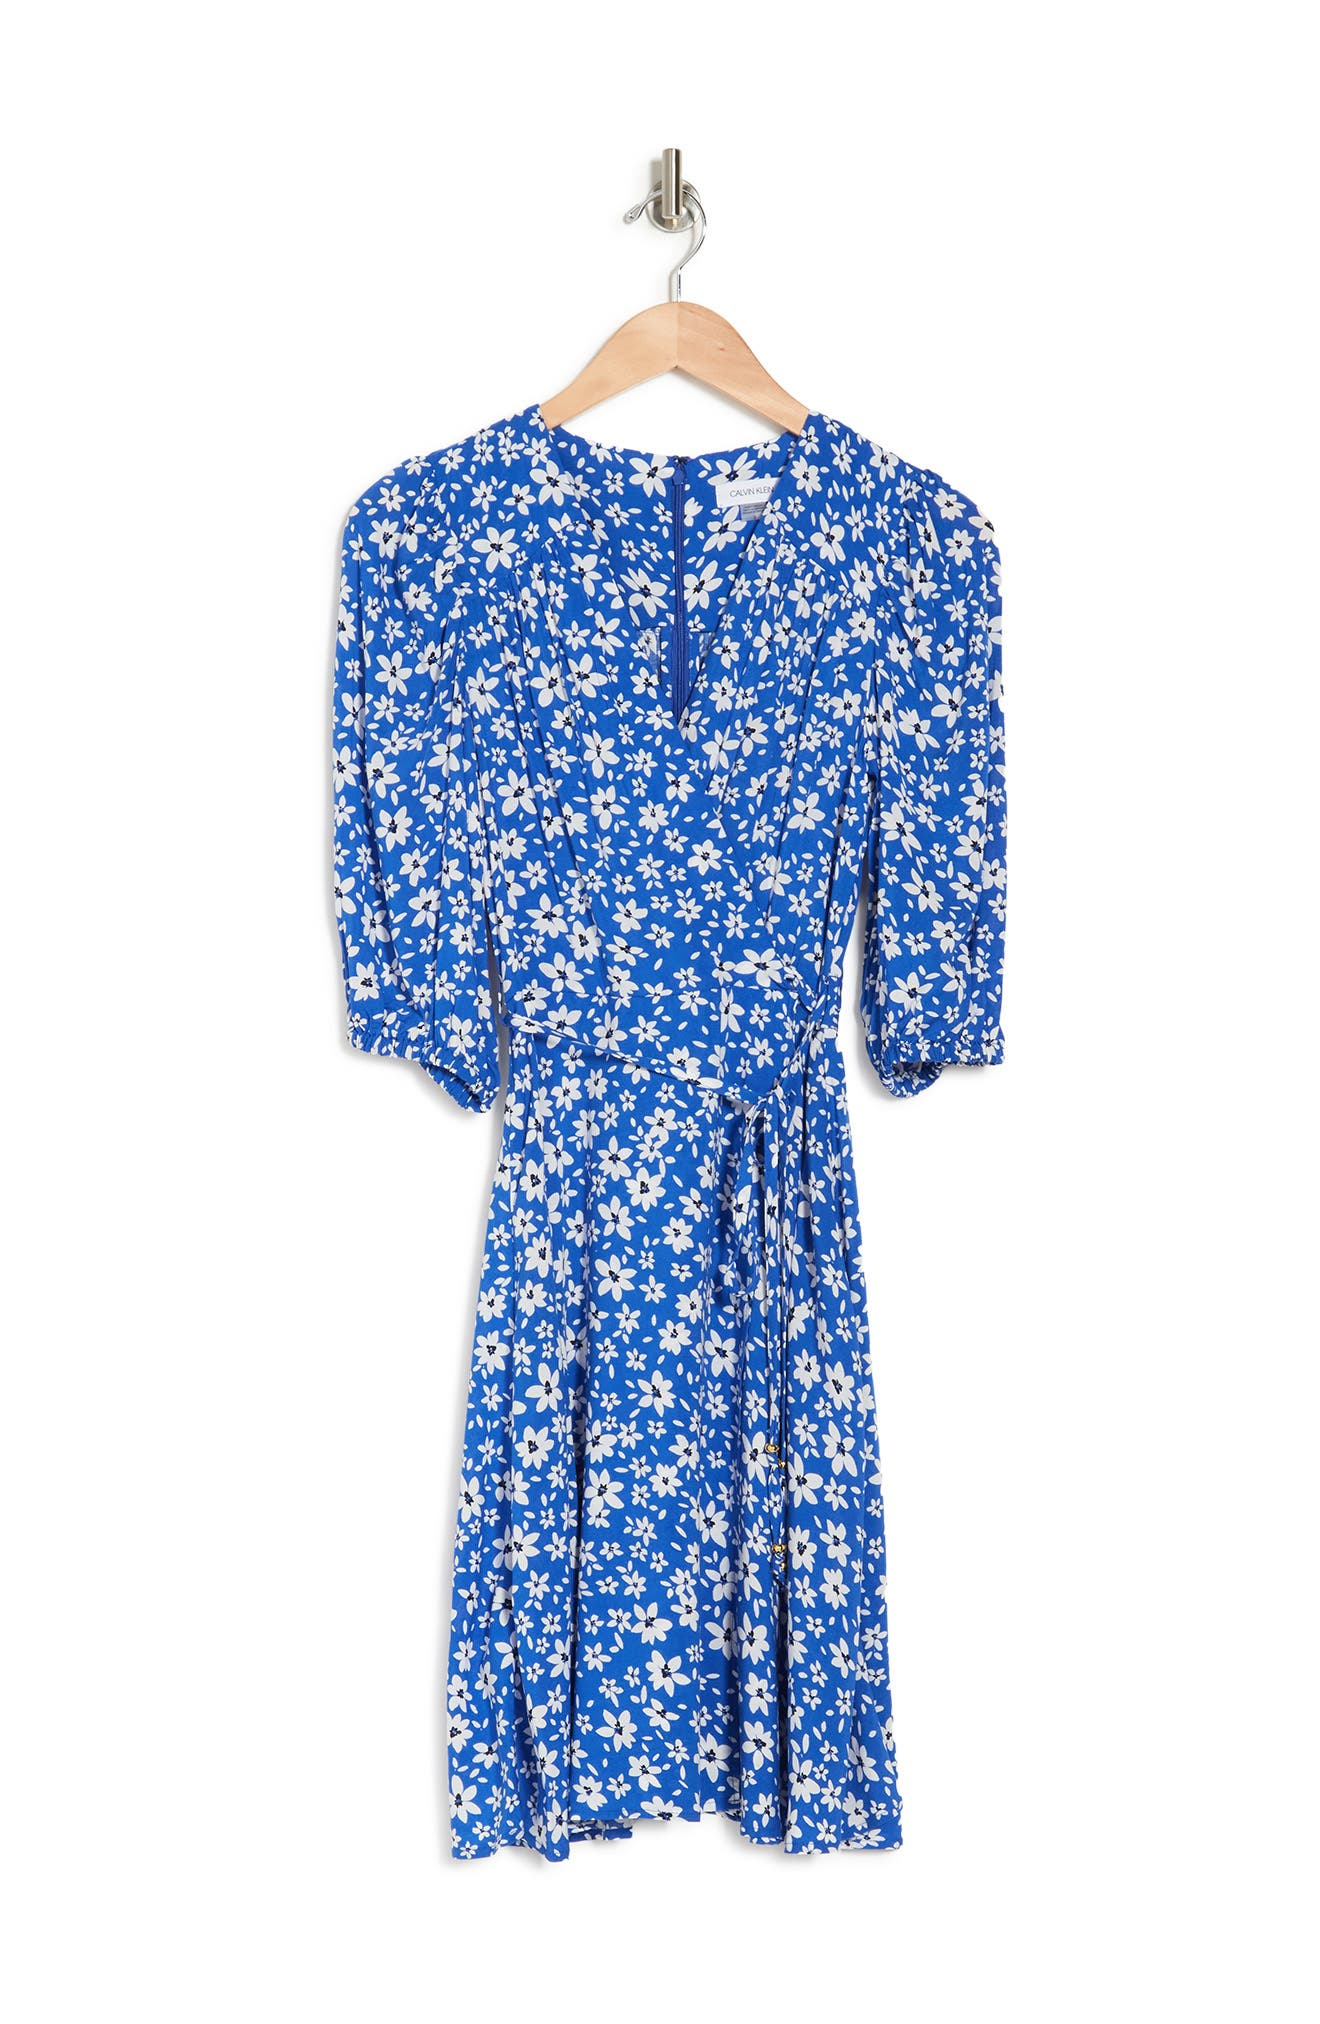 Image of Calvin Klein Floral Print Faux Wrap Dress